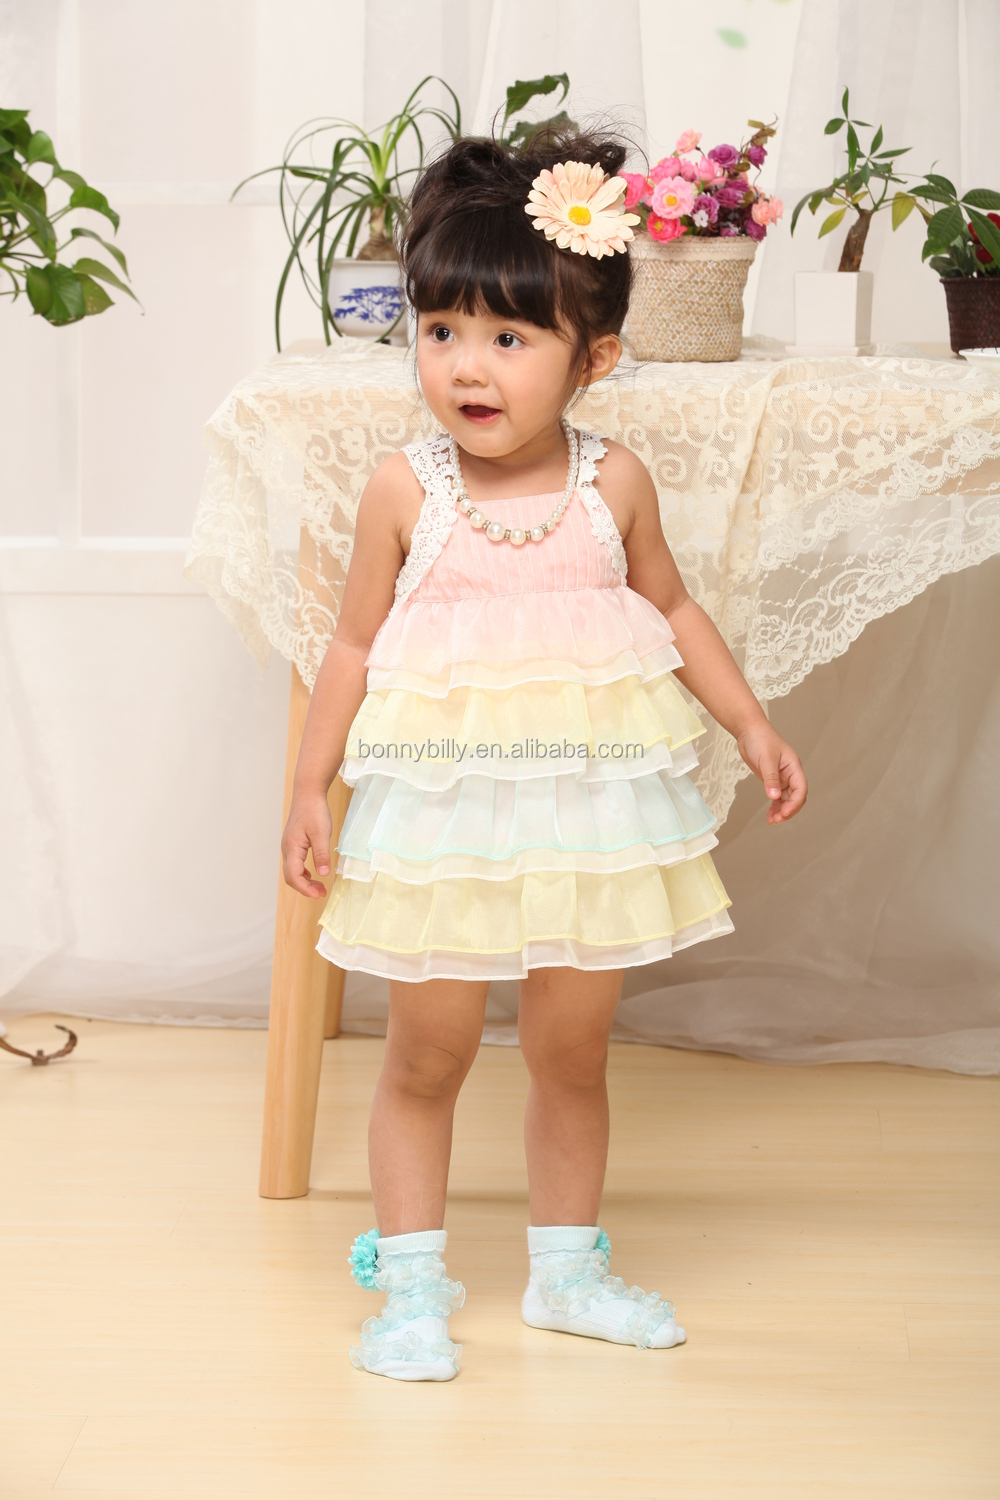 20897a9e China Factory Knitted baby clothes,baby tutu dress,1 year old baby clothes